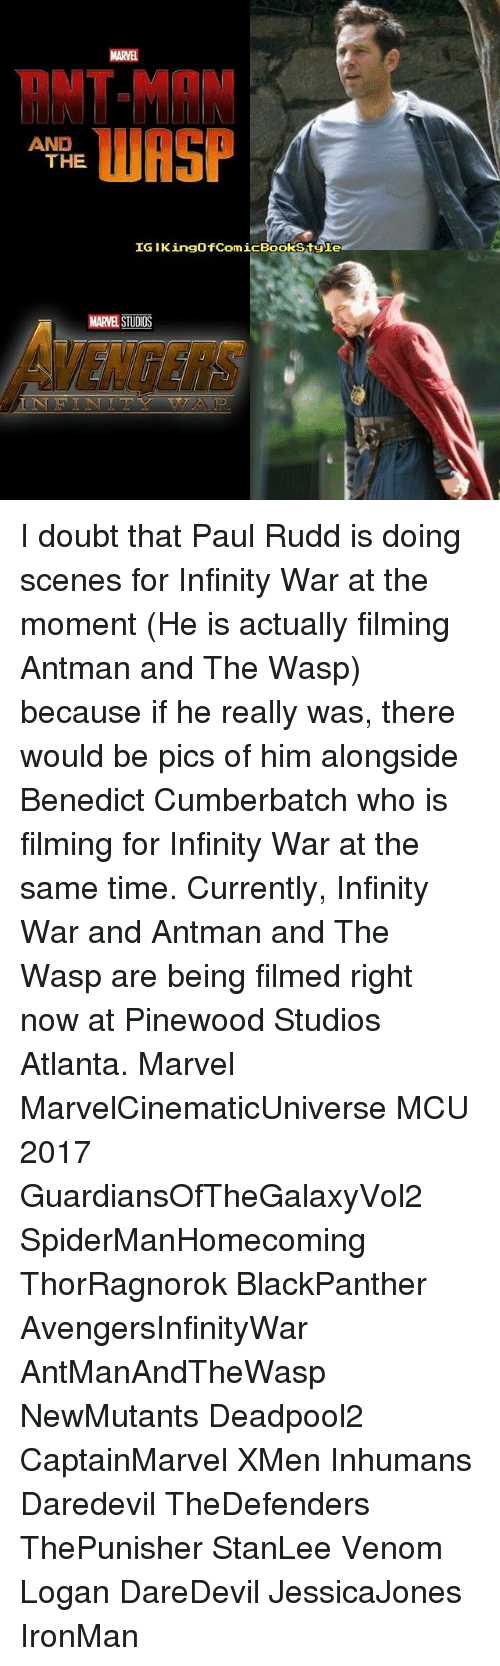 Memes, Daredevil, and Antman: RNT-MAN  WASP  AND  THE  IG IKingofComicBookStgle  MARVEL STUDIOS I doubt that Paul Rudd is doing scenes for Infinity War at the moment (He is actually filming Antman and The Wasp) because if he really was, there would be pics of him alongside Benedict Cumberbatch who is filming for Infinity War at the same time. Currently, Infinity War and Antman and The Wasp are being filmed right now at Pinewood Studios Atlanta. Marvel MarvelCinematicUniverse MCU 2017 GuardiansOfTheGalaxyVol2 SpiderManHomecoming ThorRagnorok BlackPanther AvengersInfinityWar AntManAndTheWasp NewMutants Deadpool2 CaptainMarvel XMen Inhumans Daredevil TheDefenders ThePunisher StanLee Venom Logan DareDevil JessicaJones IronMan